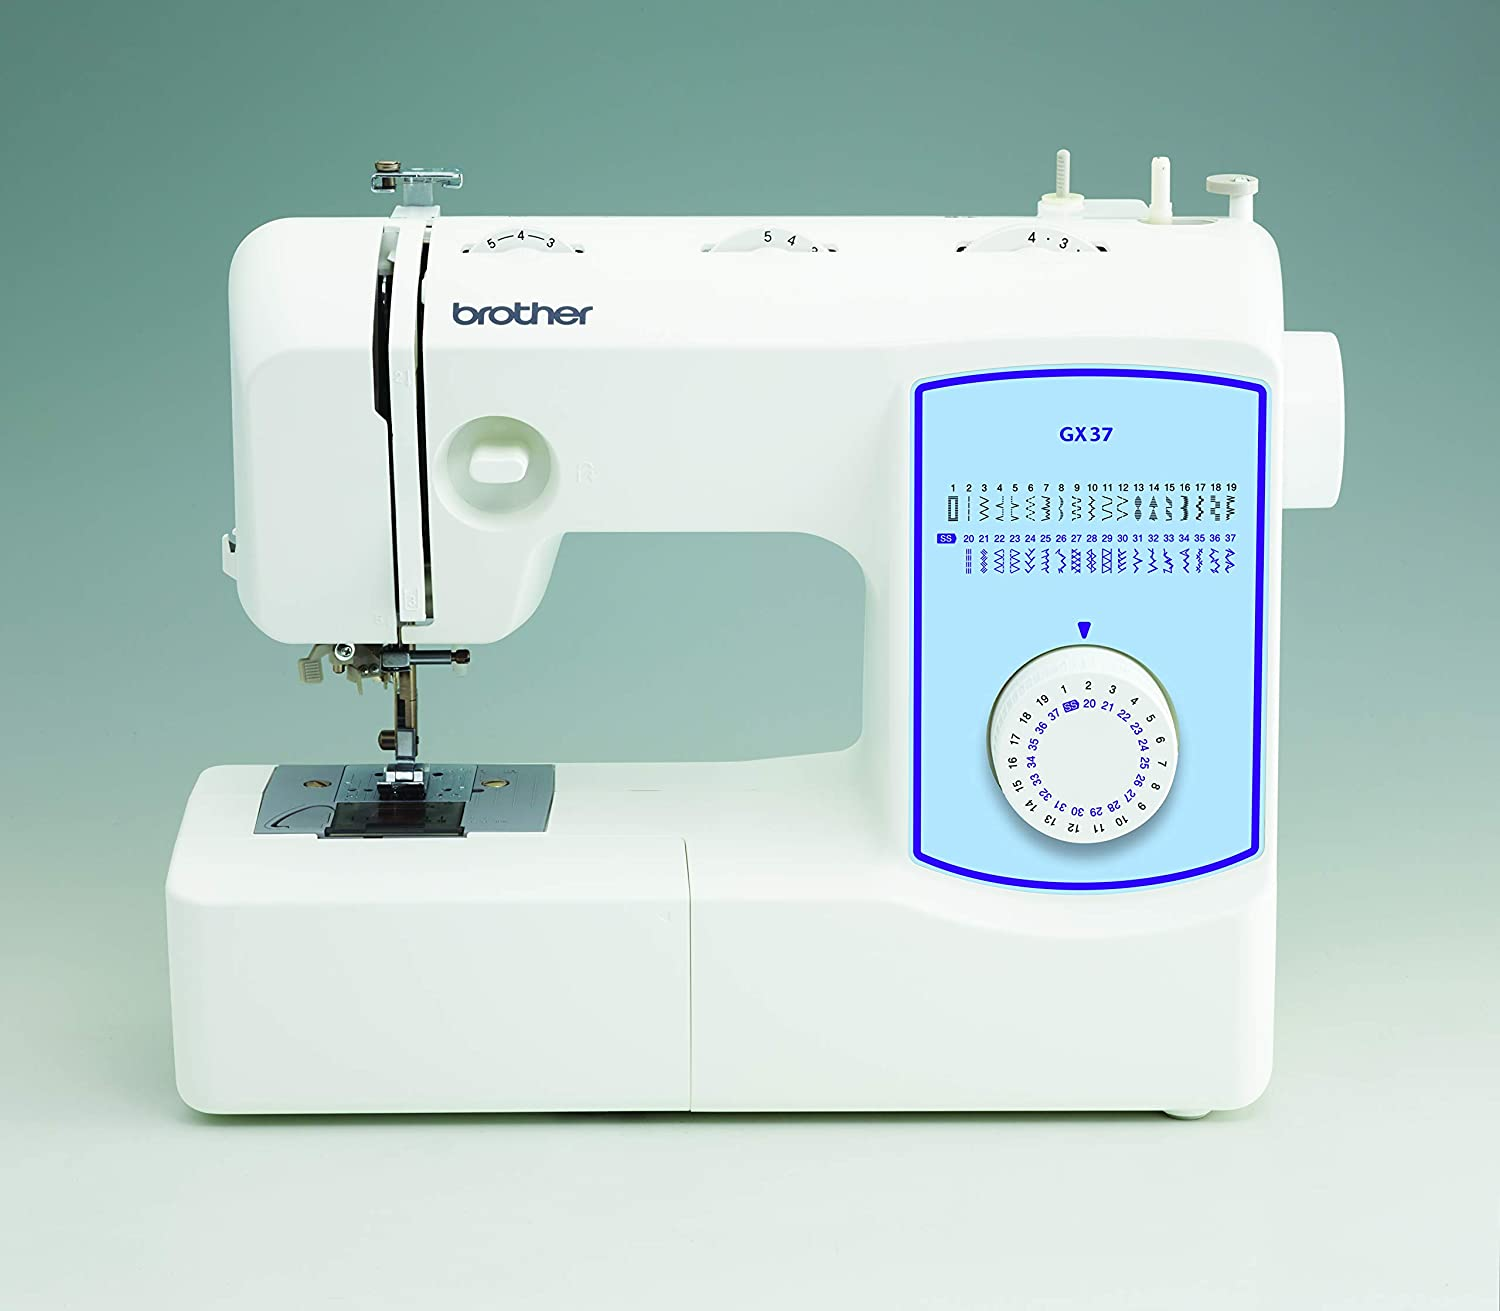 The Best cheap sewing machines under $100 - Our pick